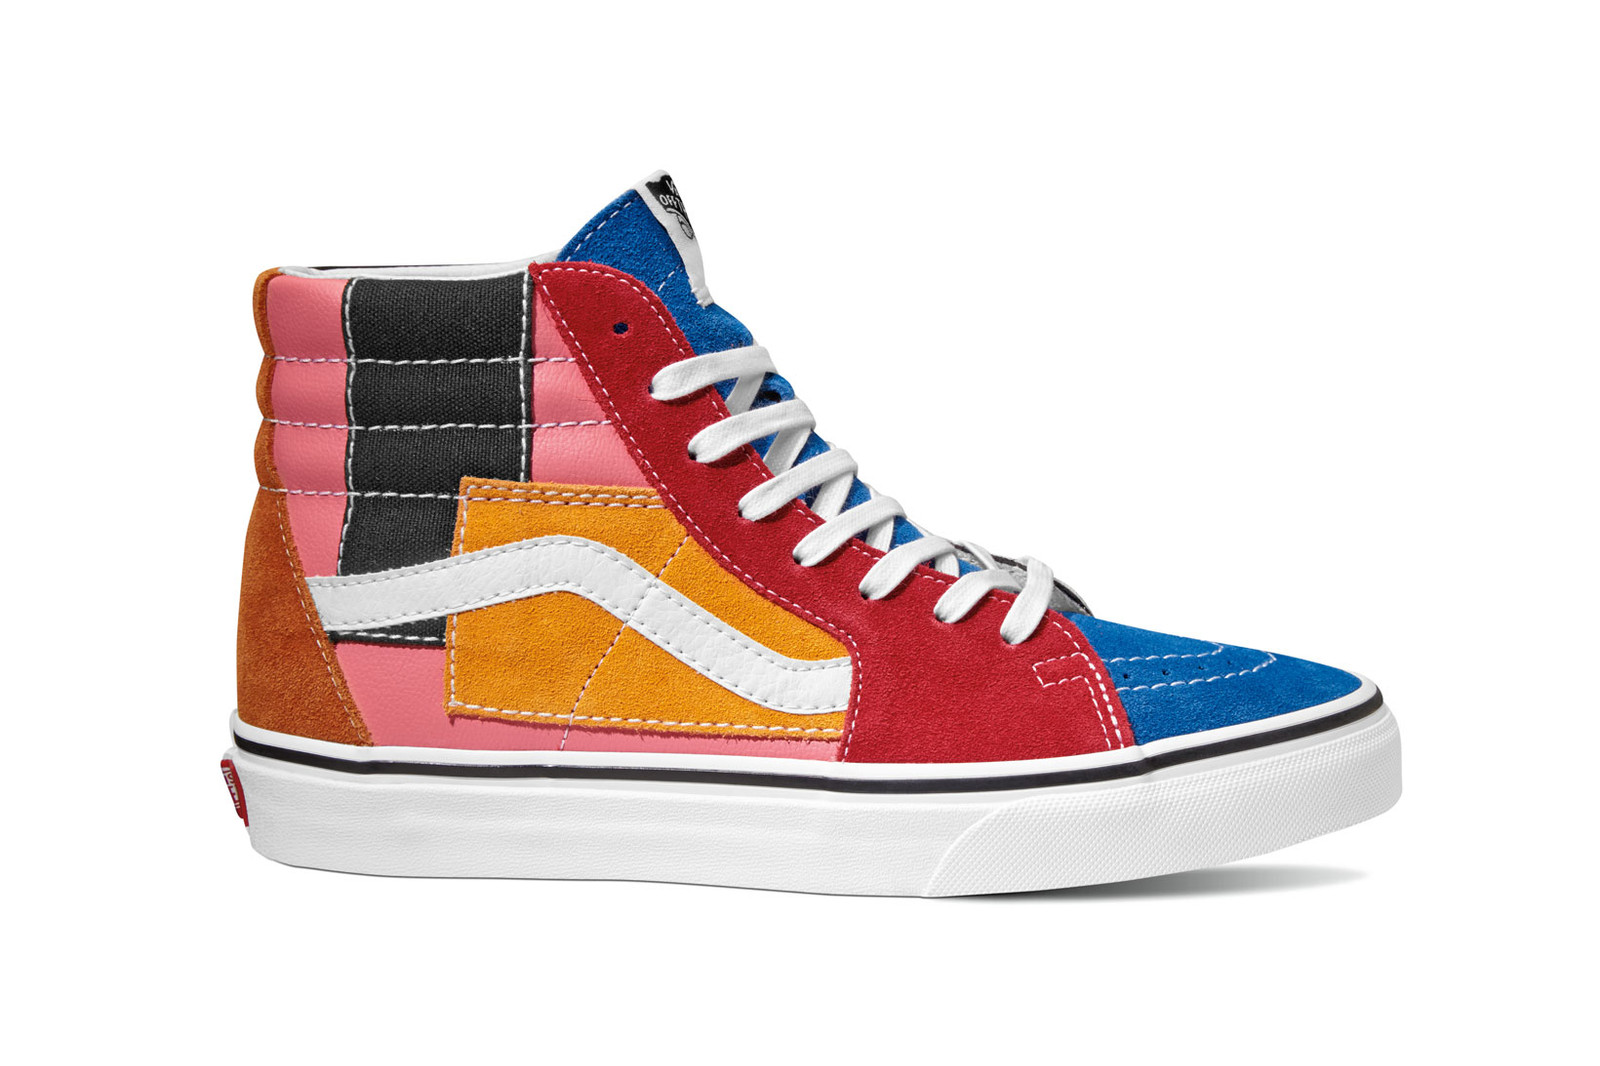 331ba1a417 Vans Patchwork Era Sk8 Hi Slip On Multi